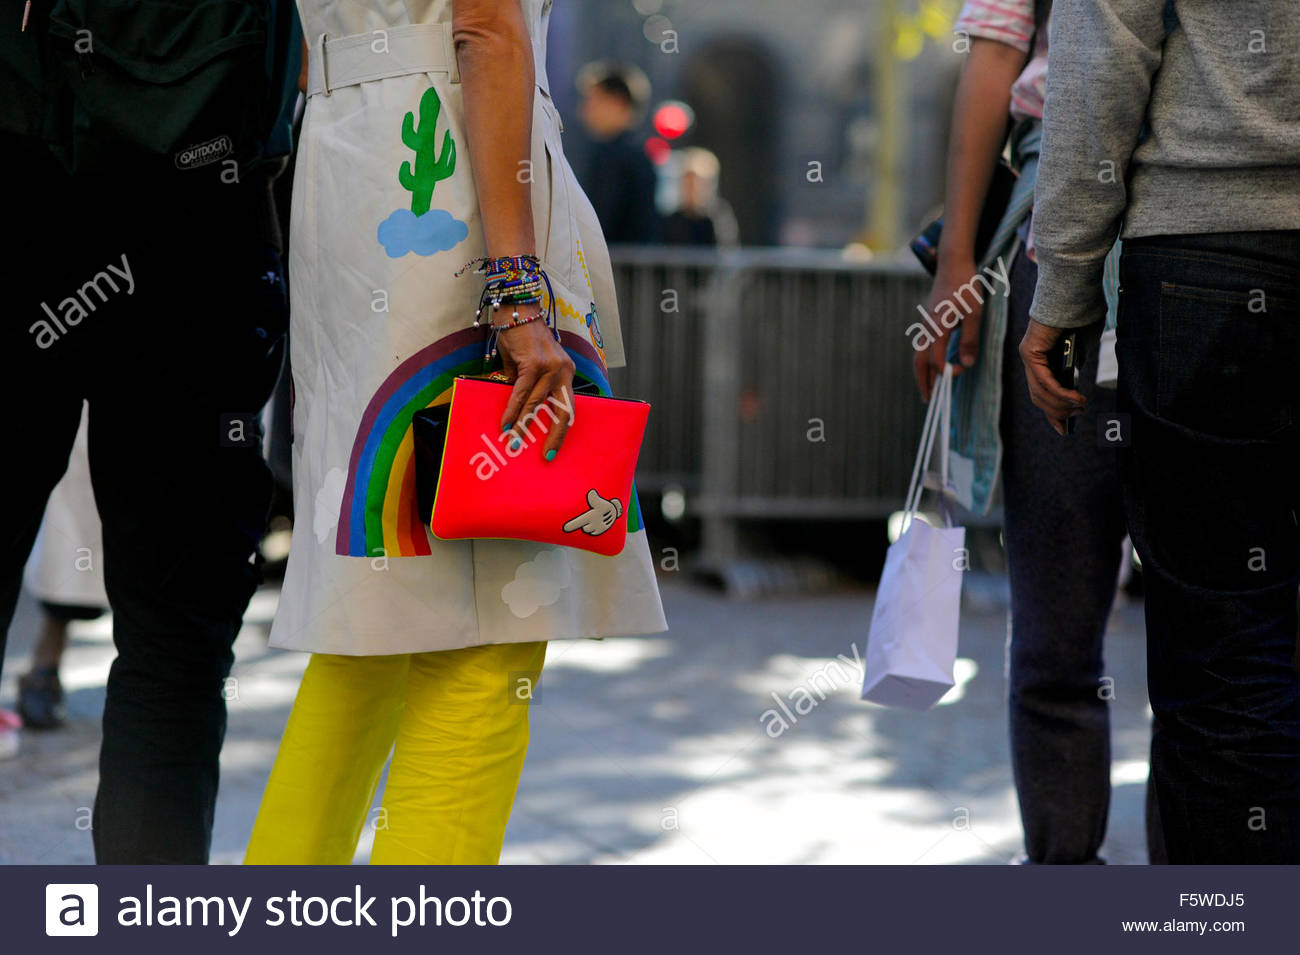 Mira Mikati after Isabel Marant ready to wear at Place Colette, Paris Fashion Week 2015 - Stock Image